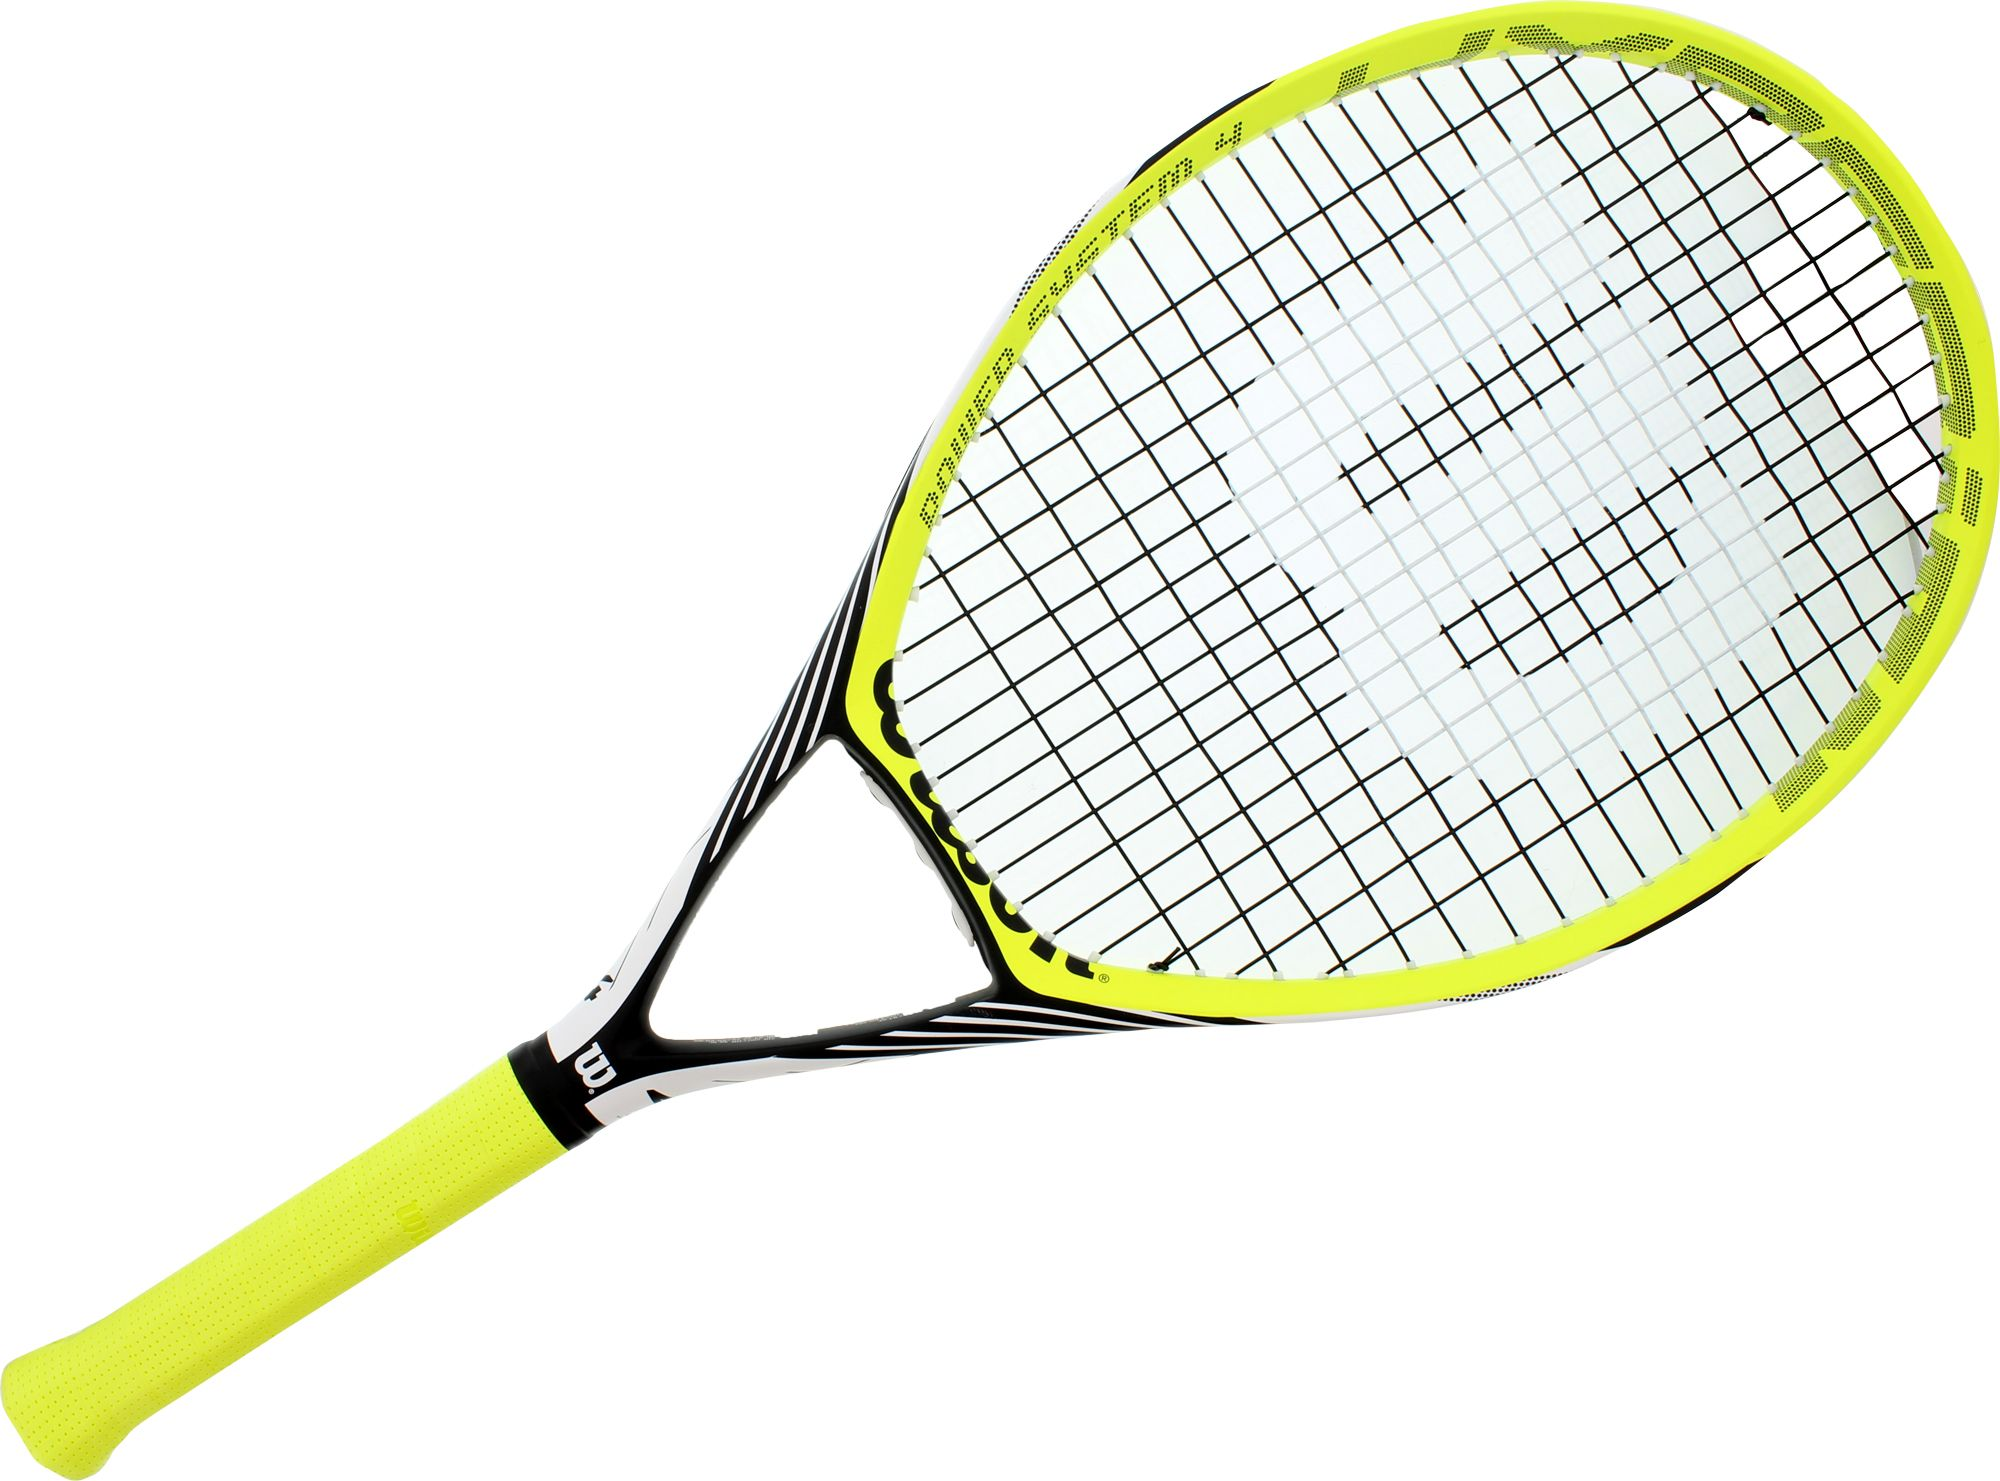 tennis racket Find the perfect tennis racket stock photos and editorial news pictures from  getty images download premium images you can't get anywhere else.